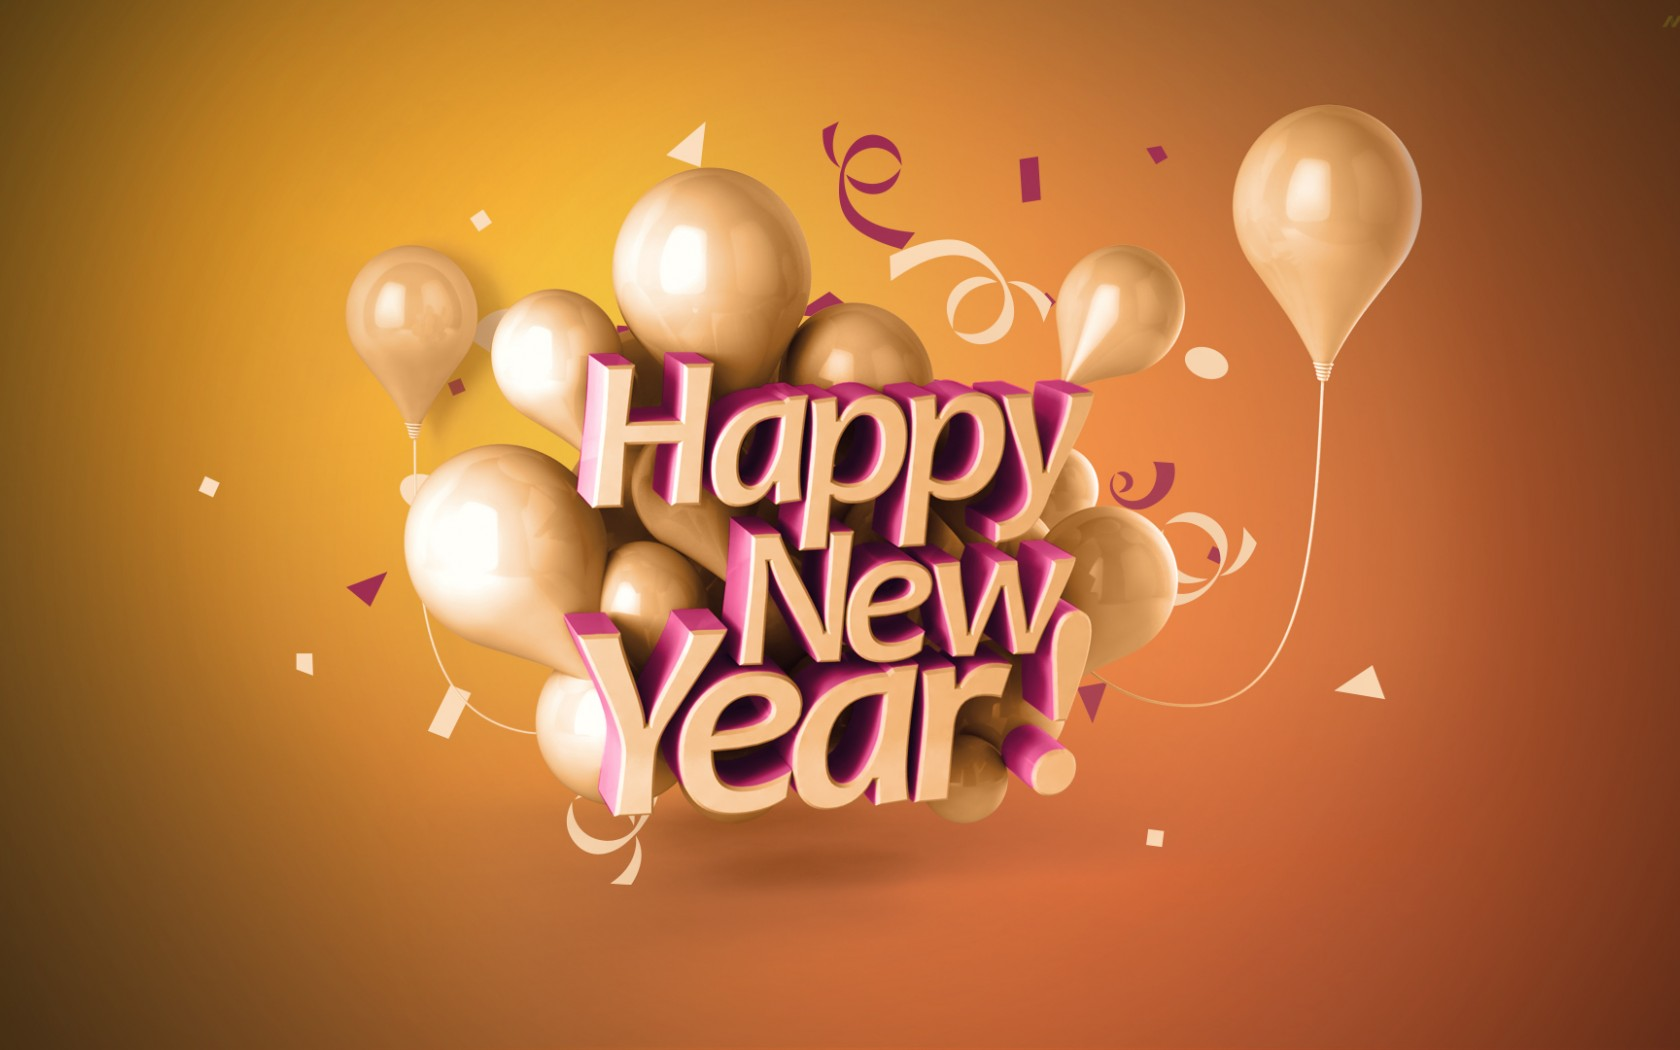 Hd wallpaper download app - Happy New Year